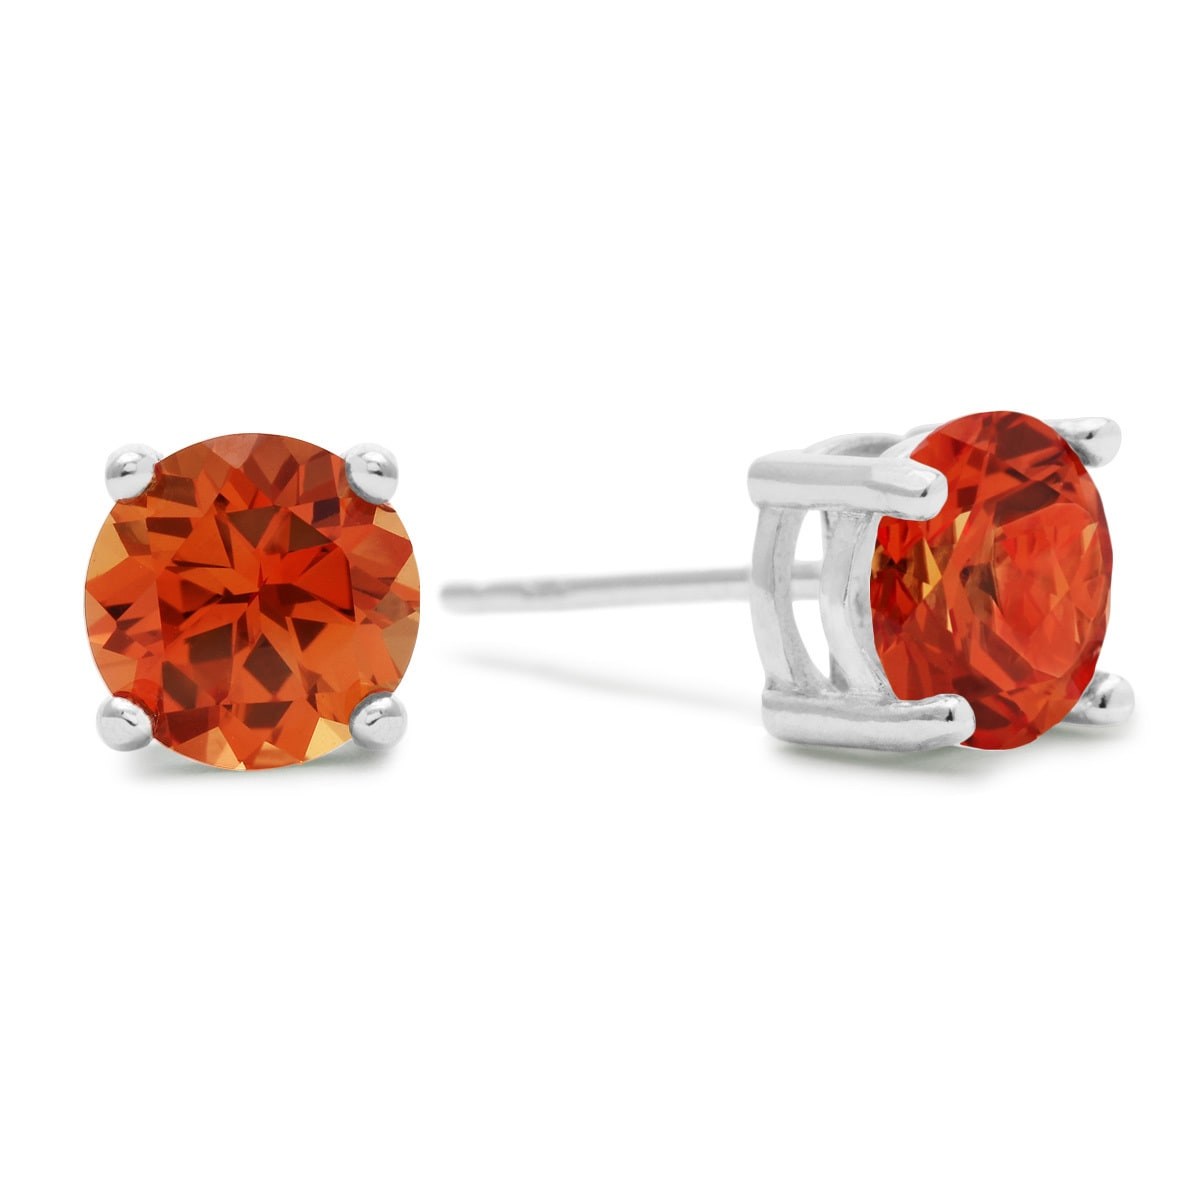 munder in earrings padparadscha earri product sapphire diamond chandelier store laura and